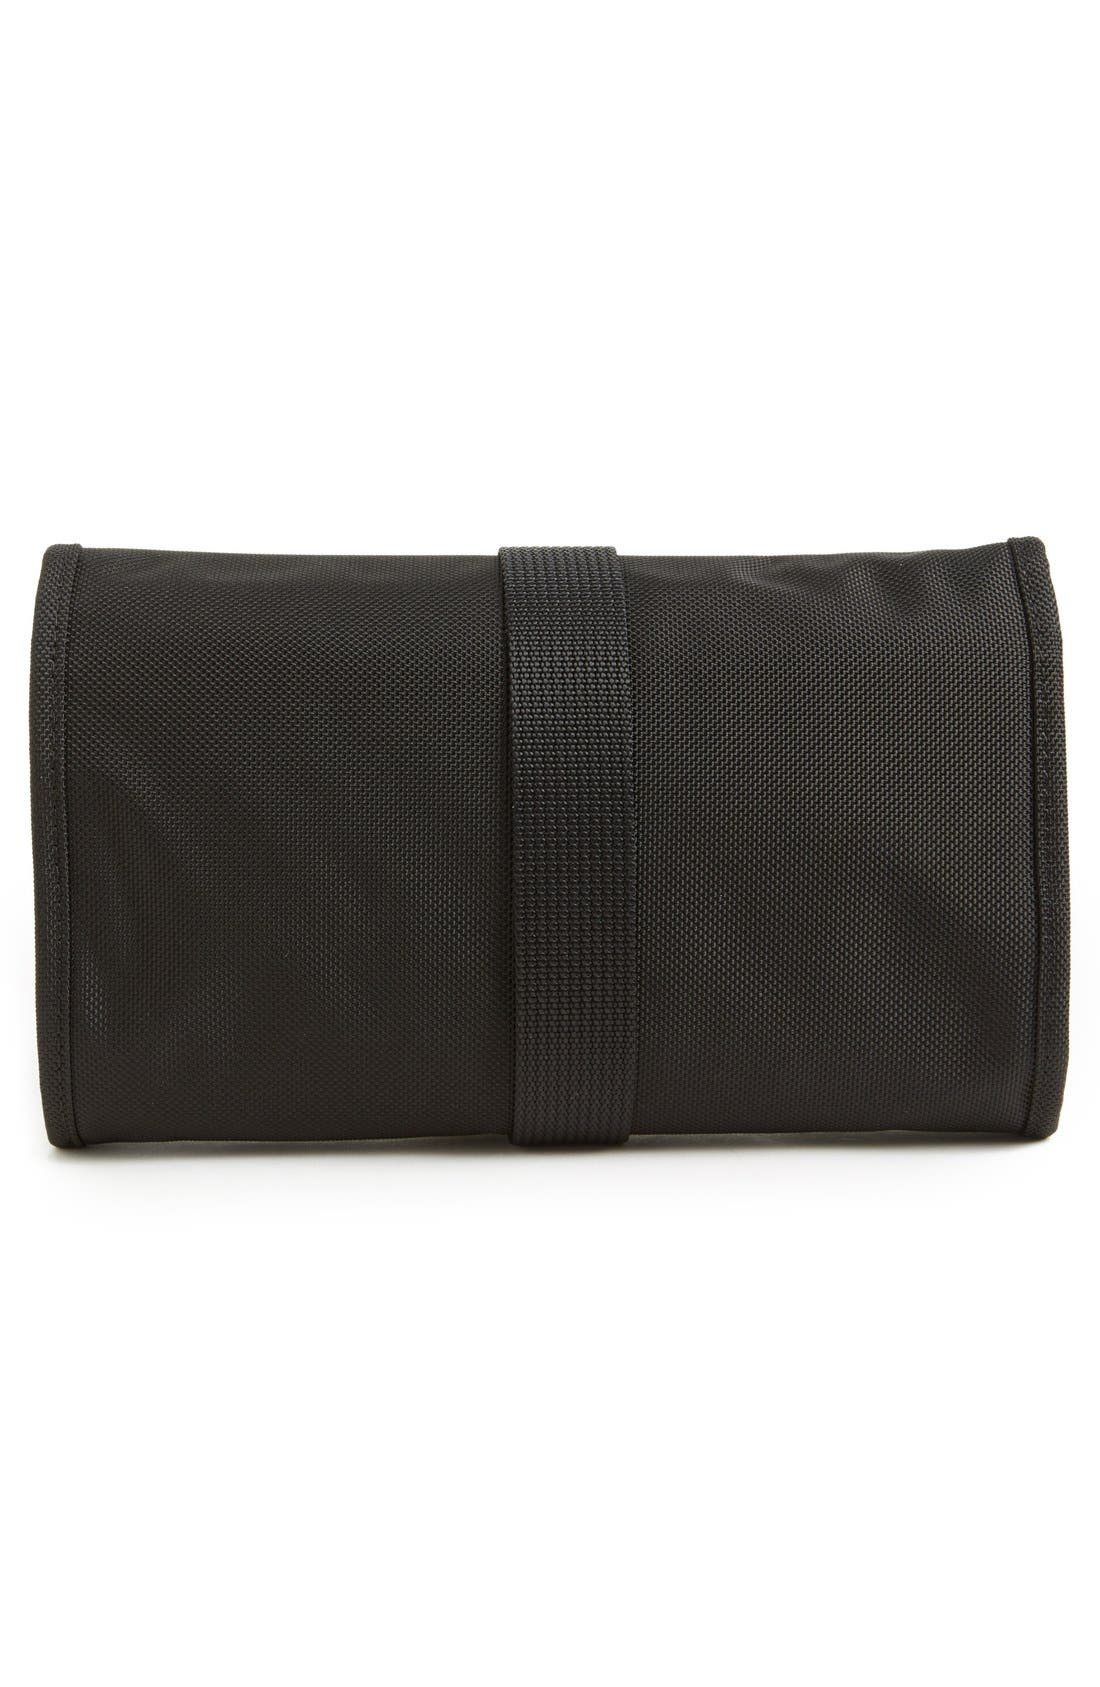 'Baseline' Compact Trifold Toiletry Kit,                             Alternate thumbnail 3, color,                             BLACK